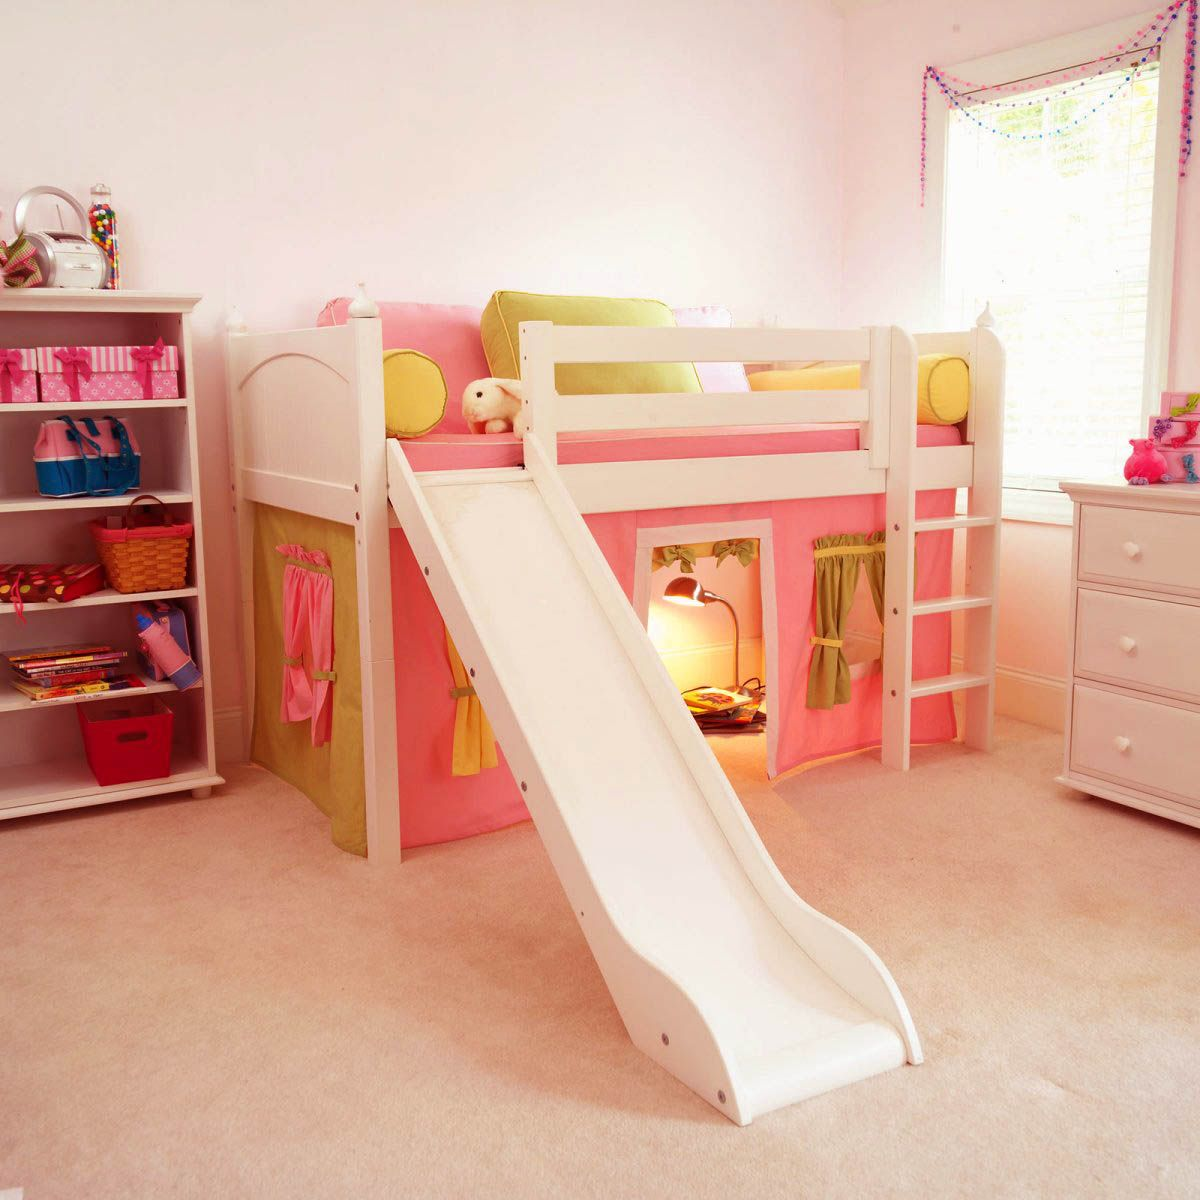 childrens beds with slides. Marvelous Girl Tent Low Loft With Slide - Kids Beds At Furniture Mart Obviously I Would Get The Boy Version. Childrens Slides Z